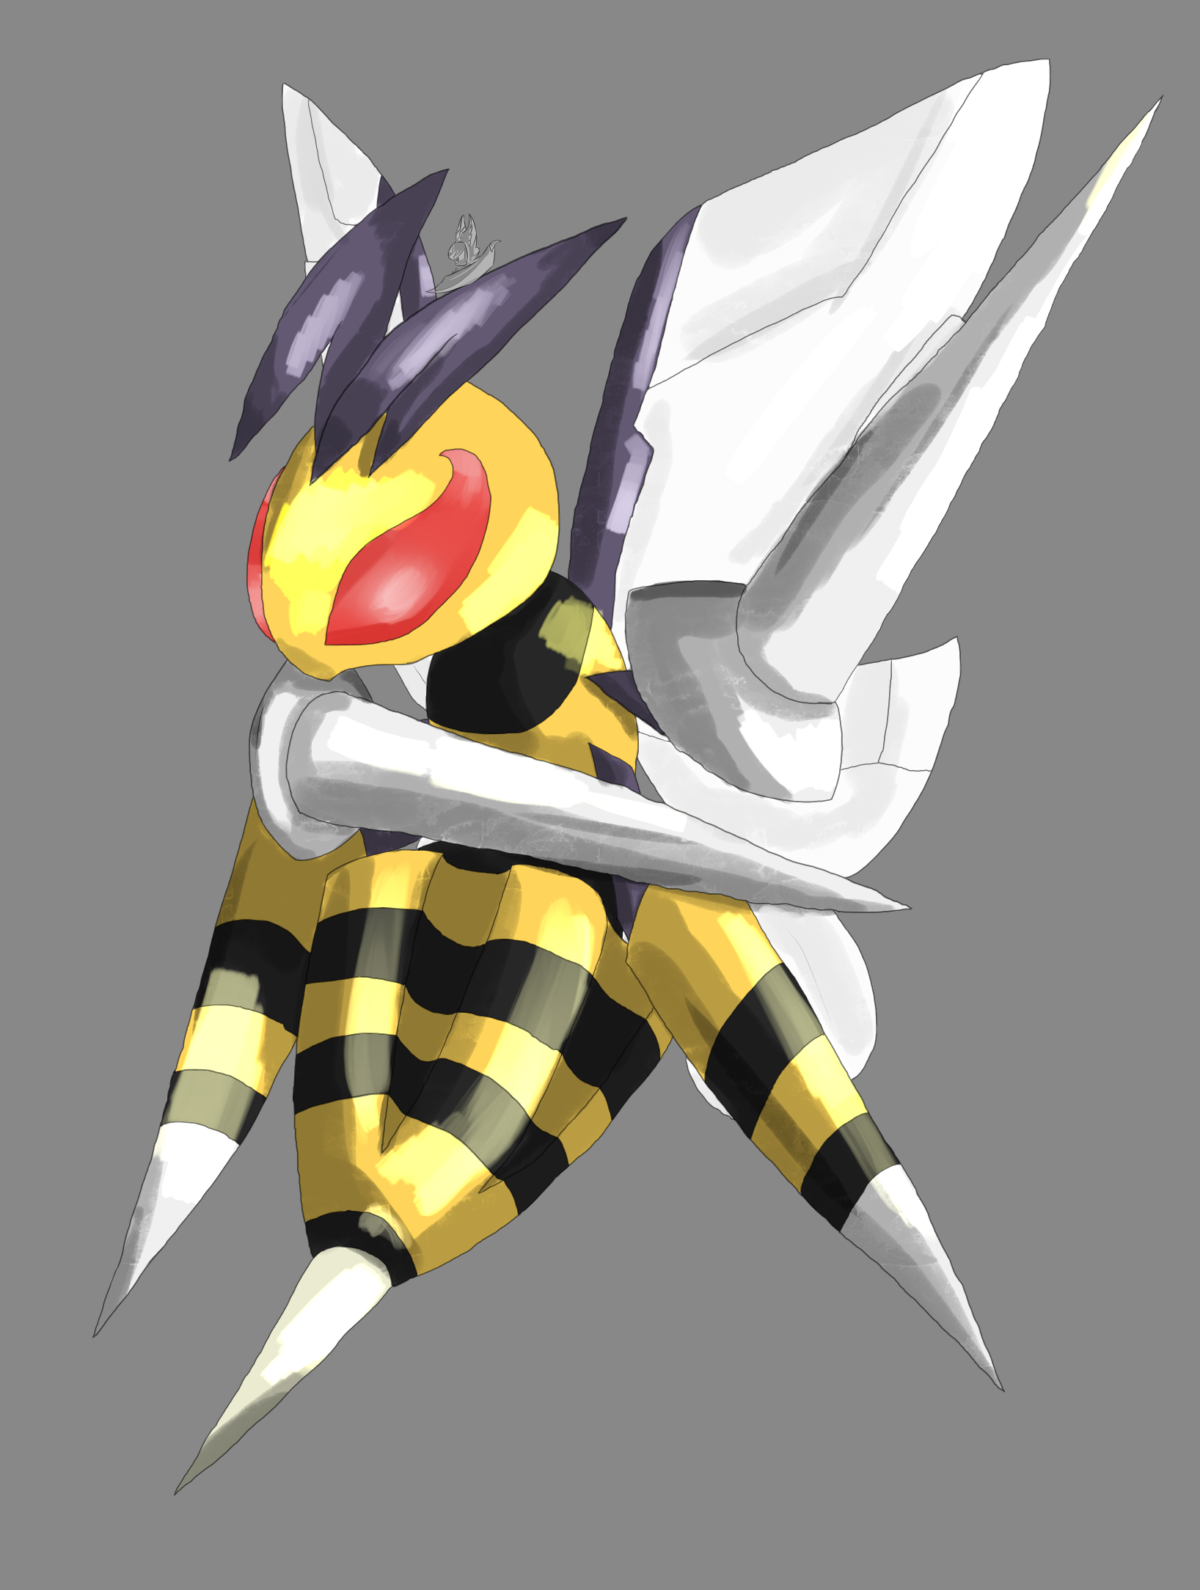 Mega Beedrill Vs Mega Pidgeot by Harijizo on DeviantArt